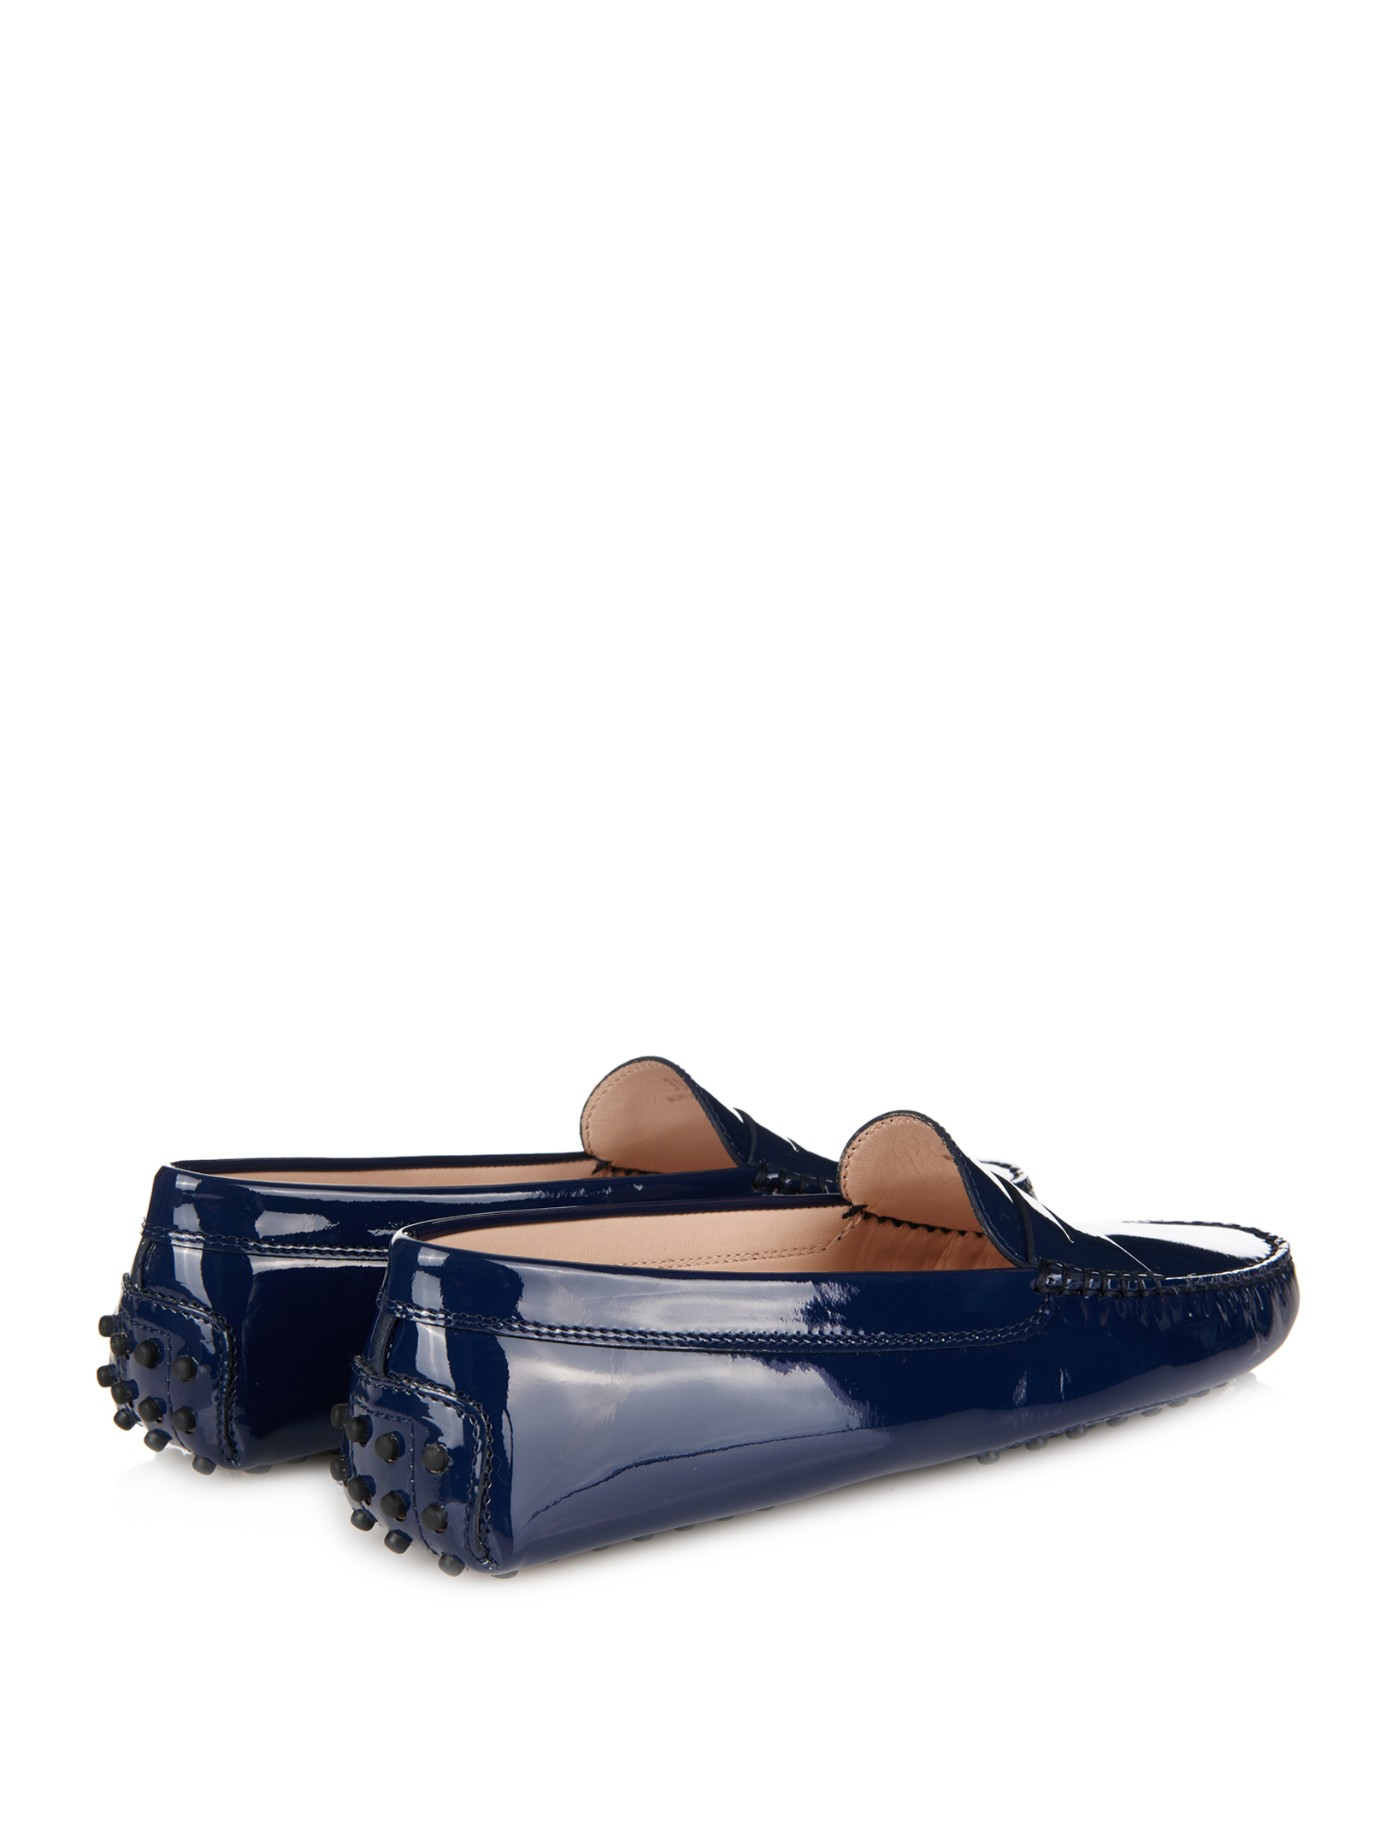 0043d343328 Tod's Gommino Patent-Leather Loafers in Blue - Lyst